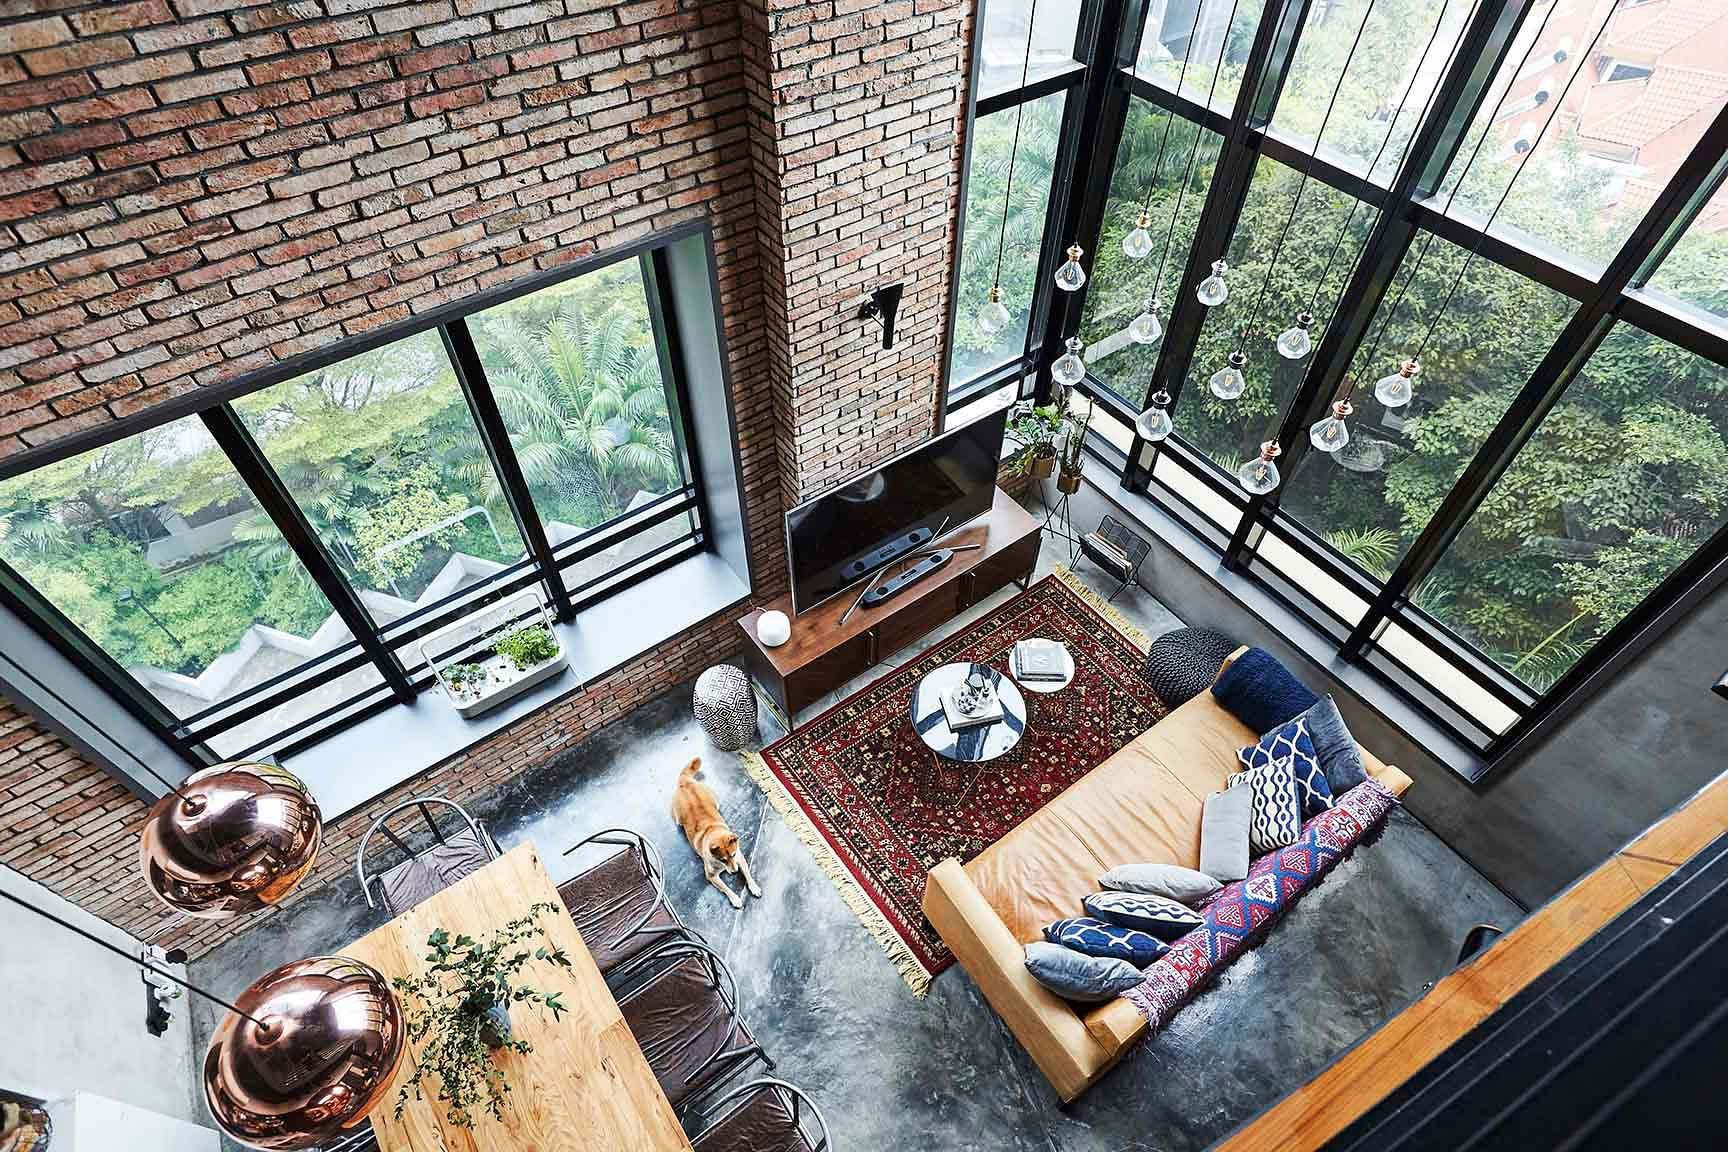 House Tour: Industrial-style loft-inspired duplex condominium apartment in Bukit Timah title=